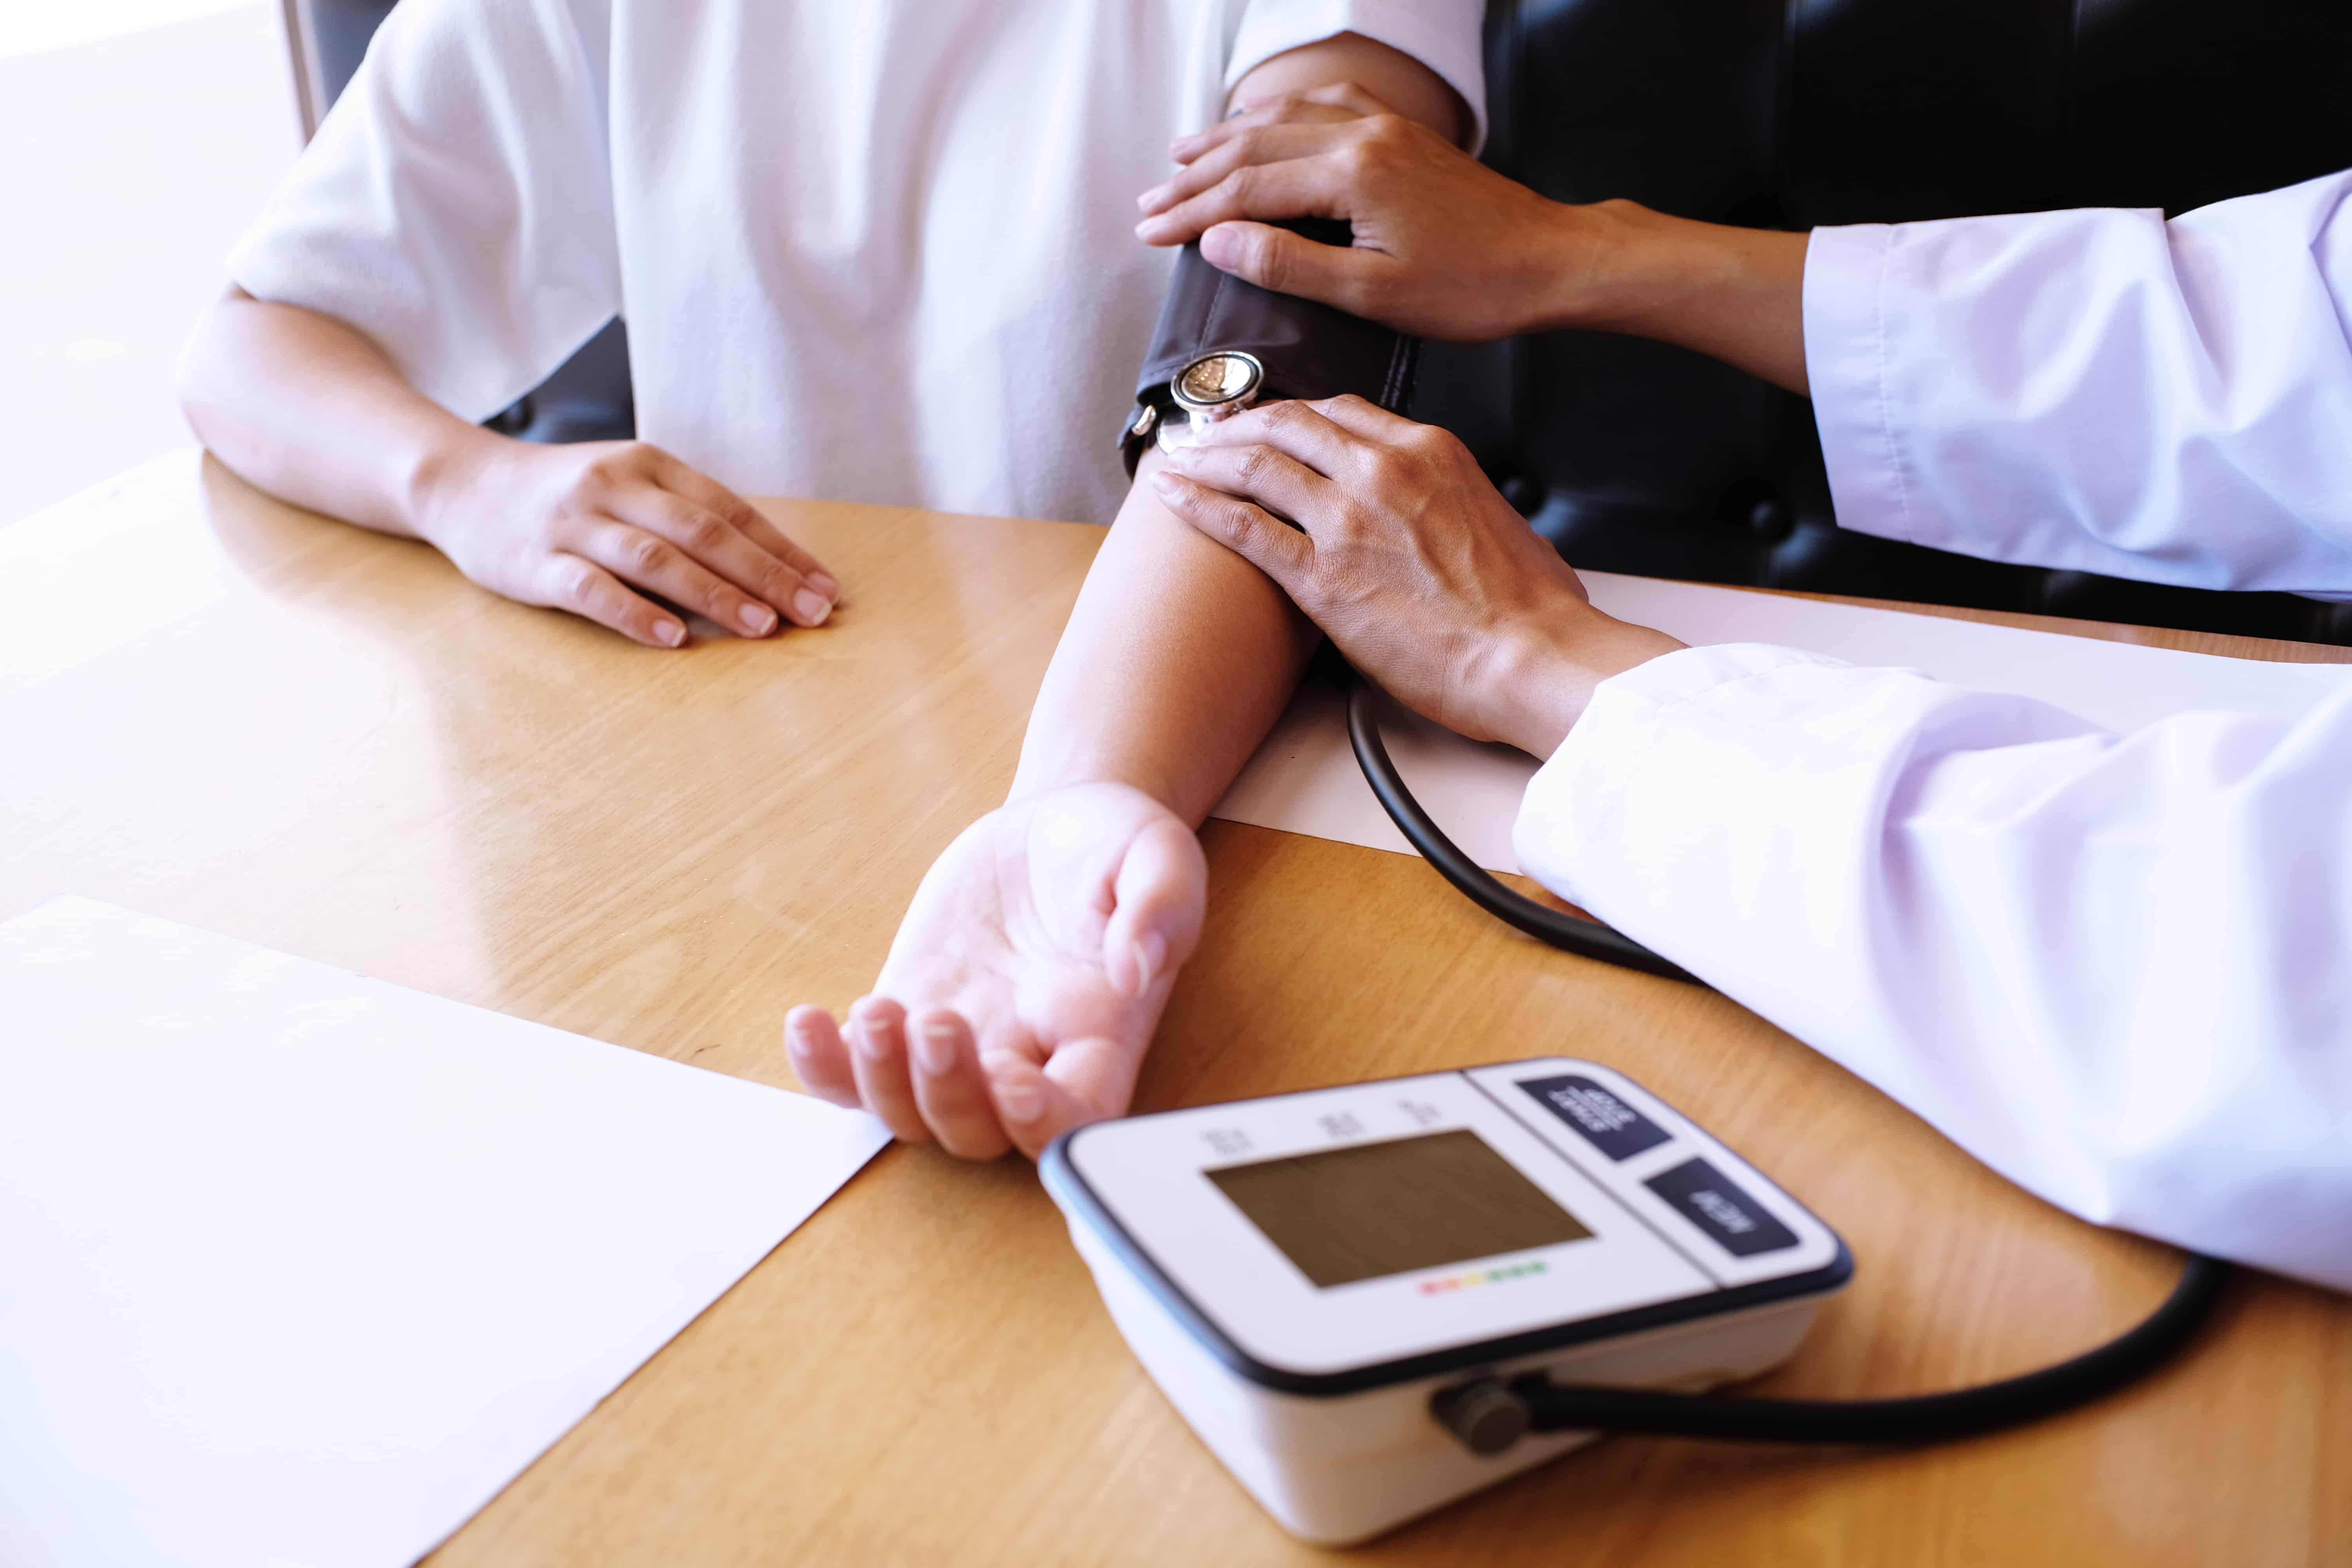 Take heart: Your primary care doctor can start you on the